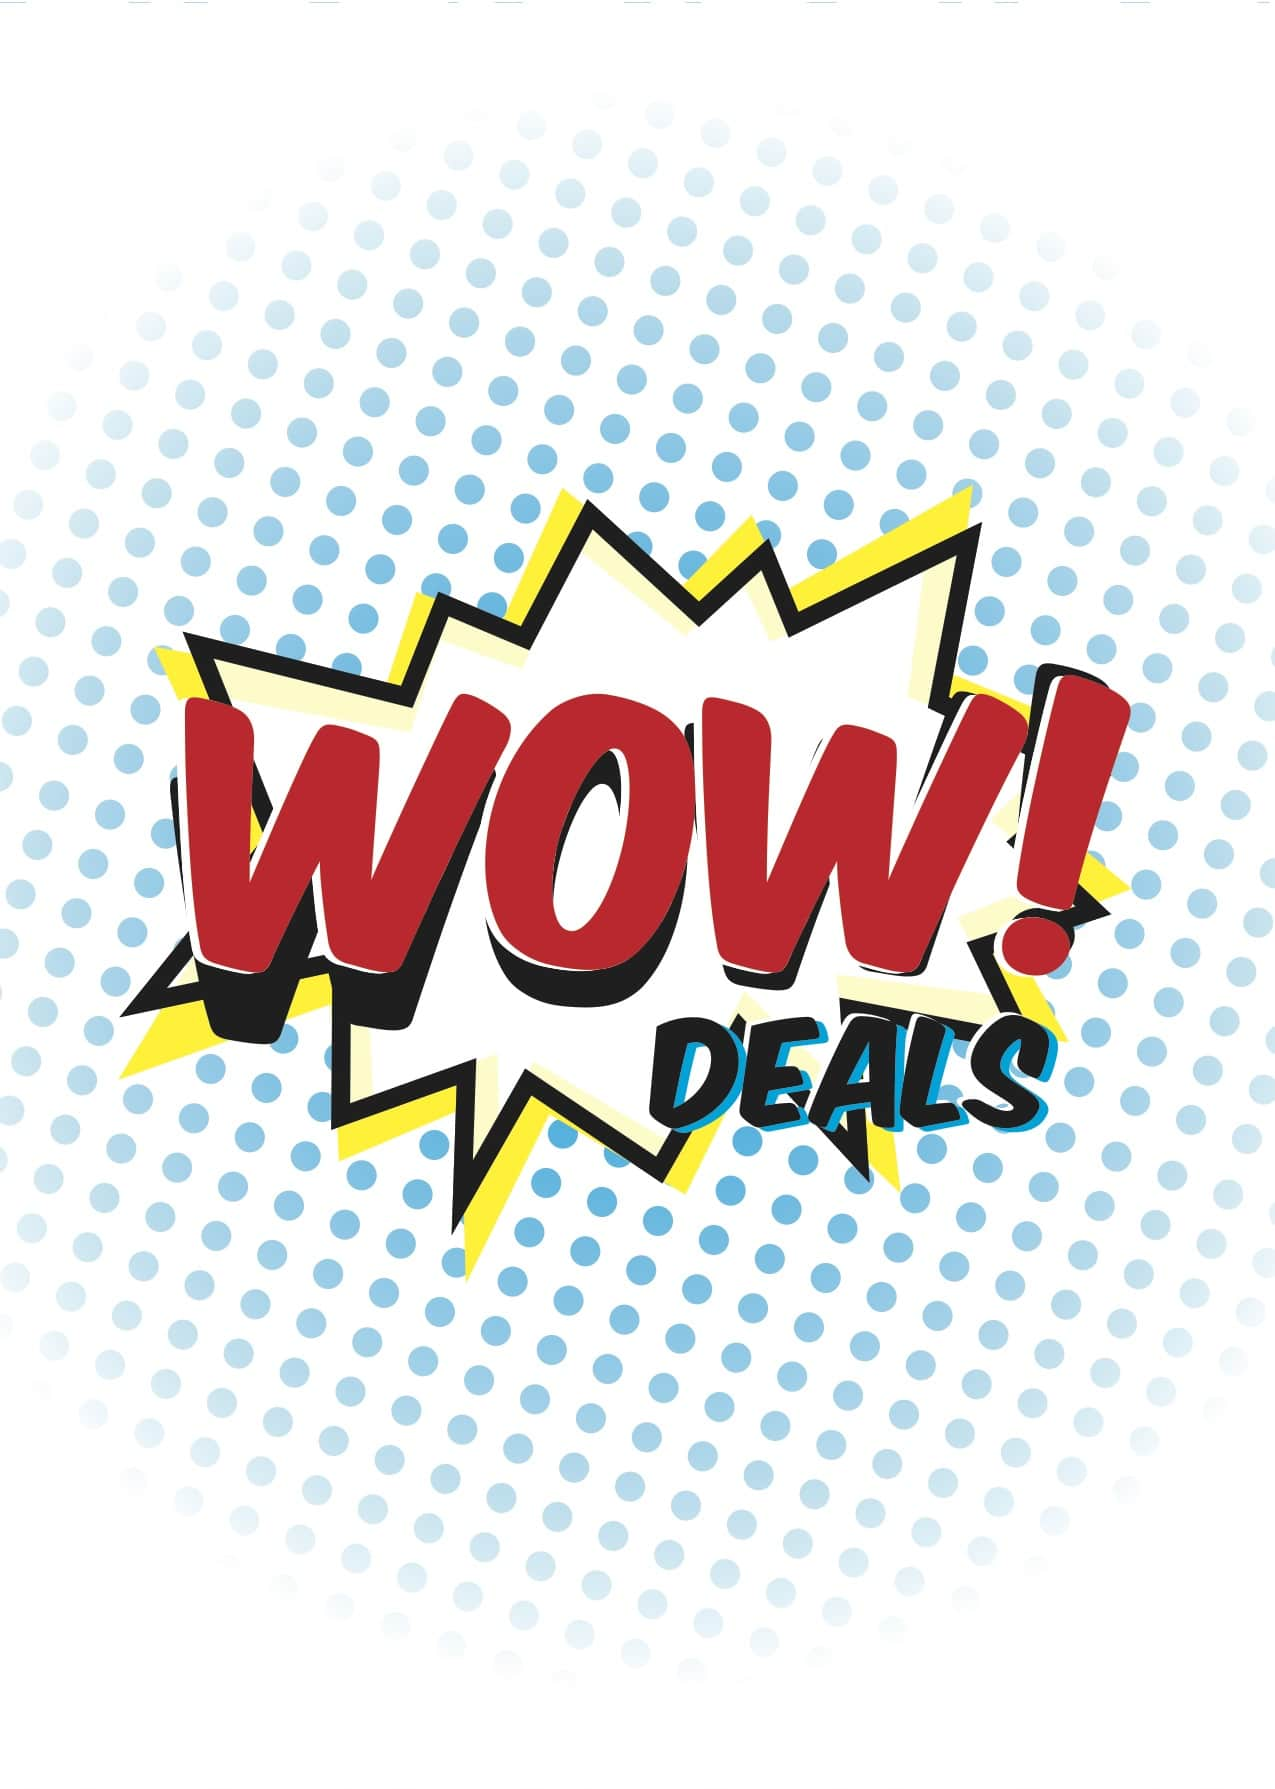 Wow deals uk review